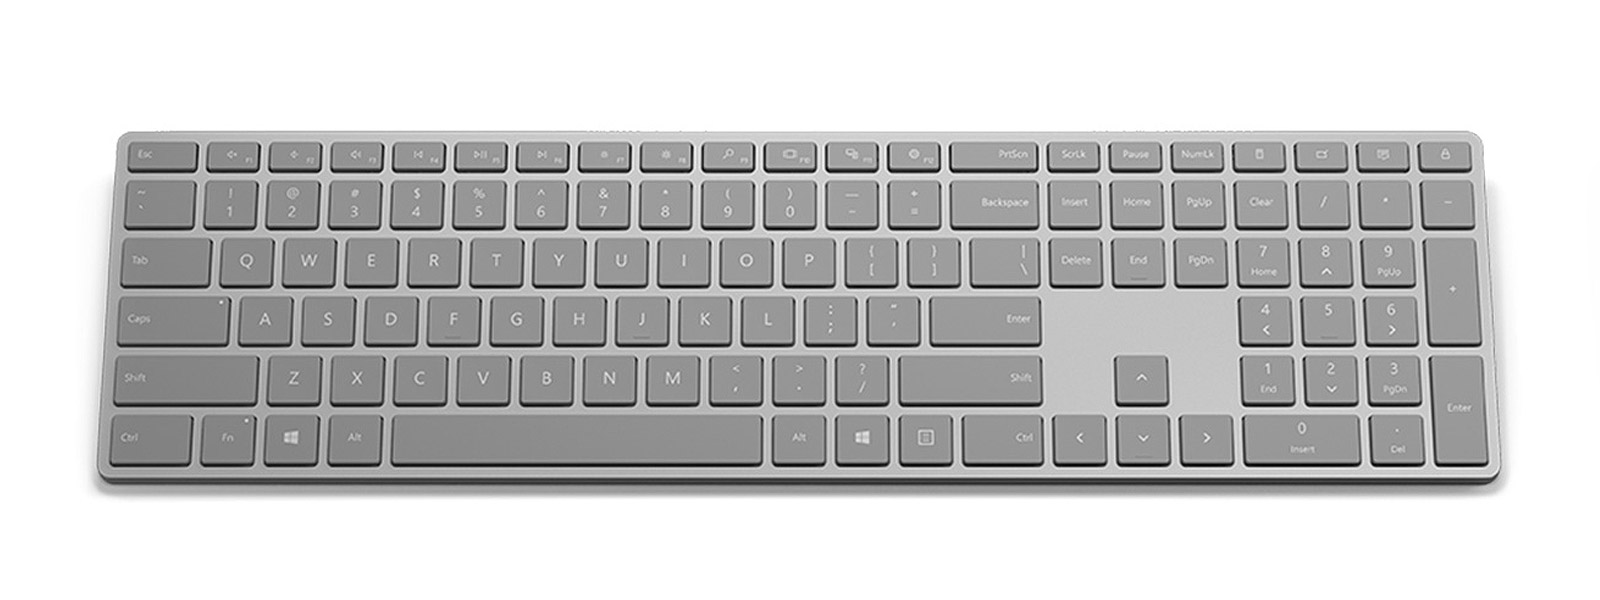 Surface keyboard as seen from the top